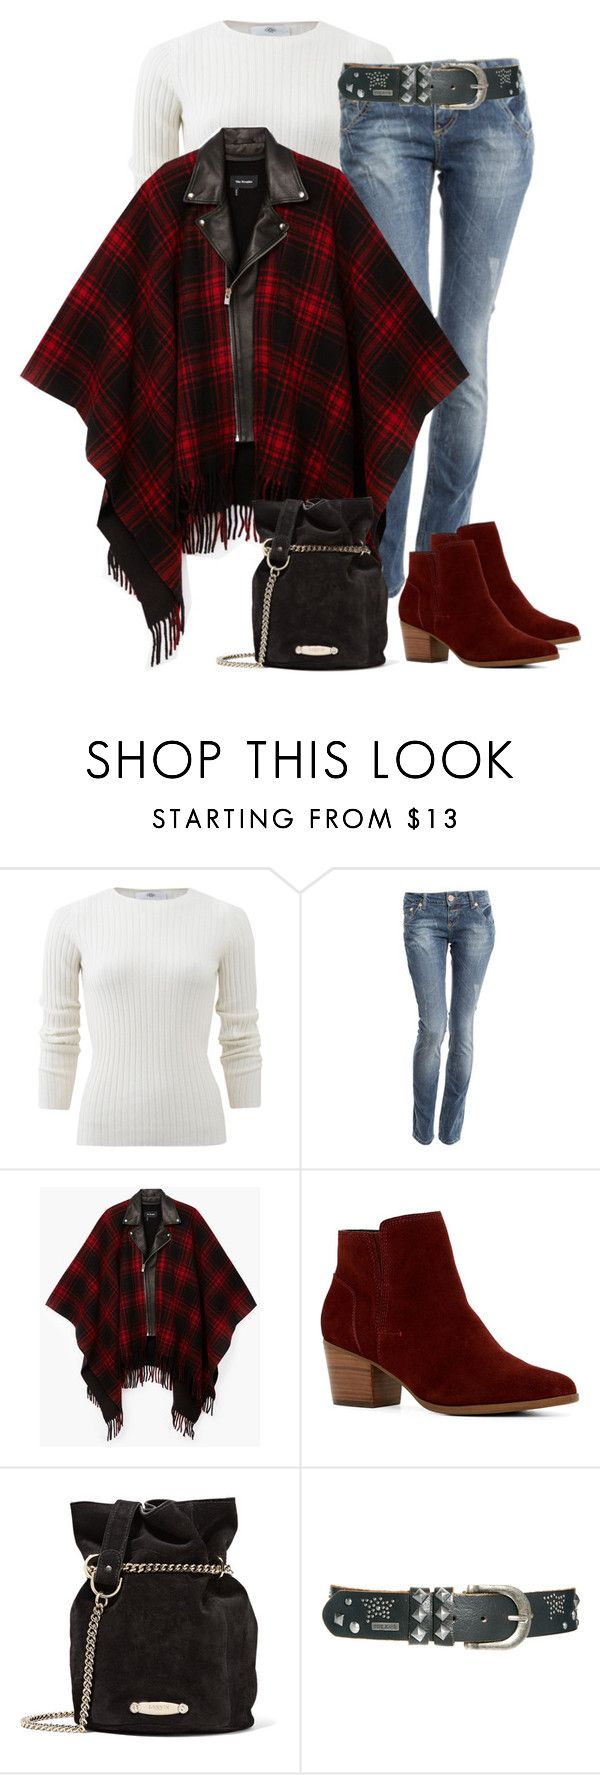 """""""Biker Poncho"""" by sheryl-lee ❤ liked on Polyvore featuring Allude, Crafted, ALDO, Lanvin and Pepe Jeans London"""